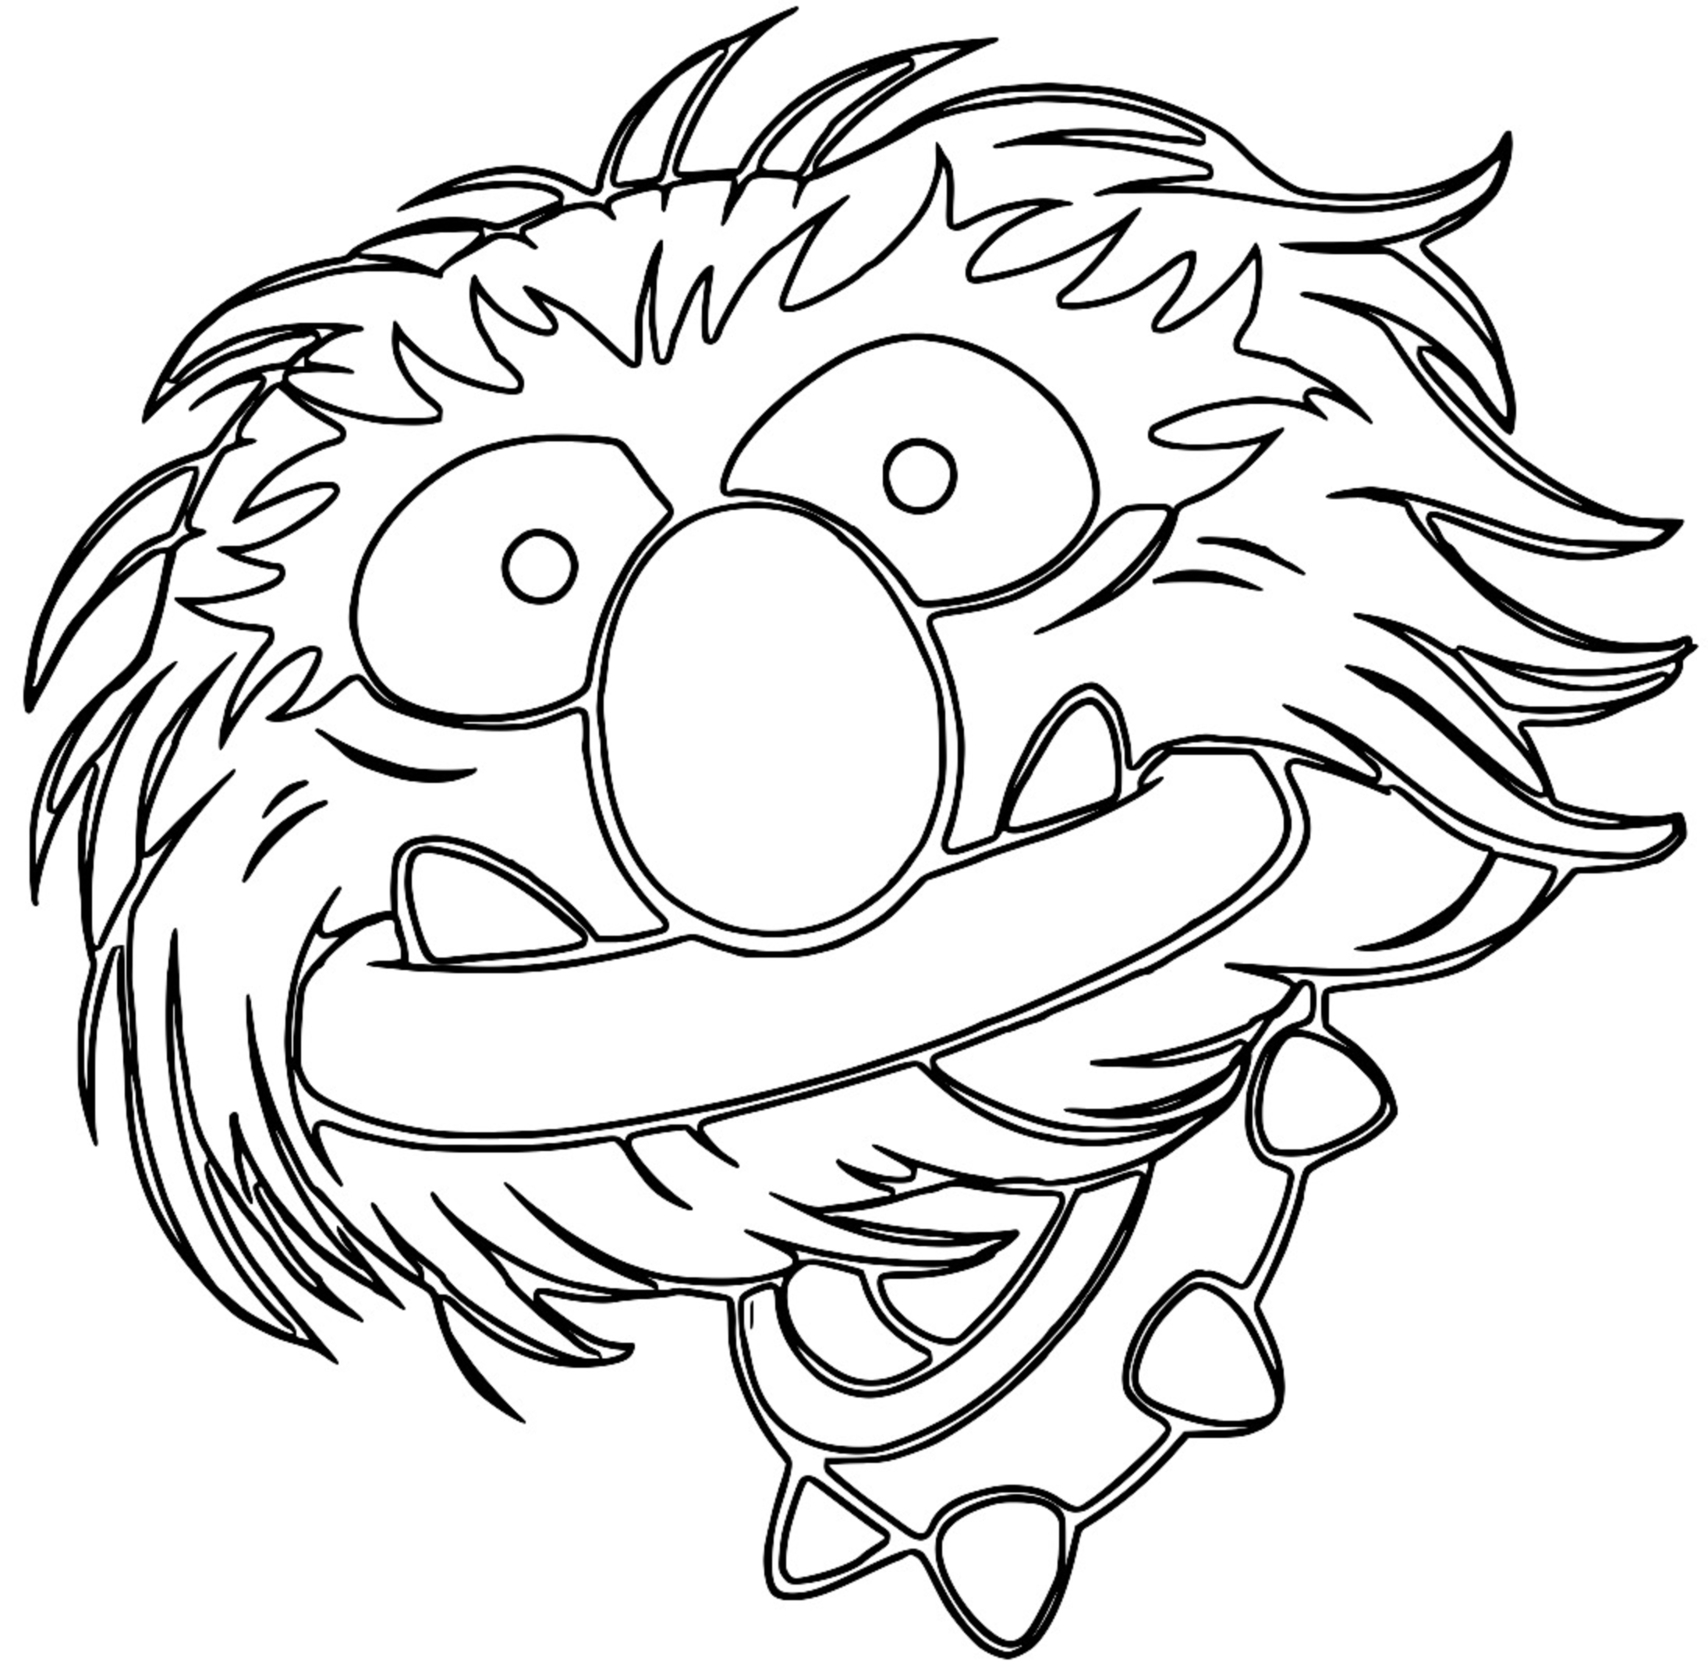 The Muppets muppets animal 2 Cartoon Coloring Page